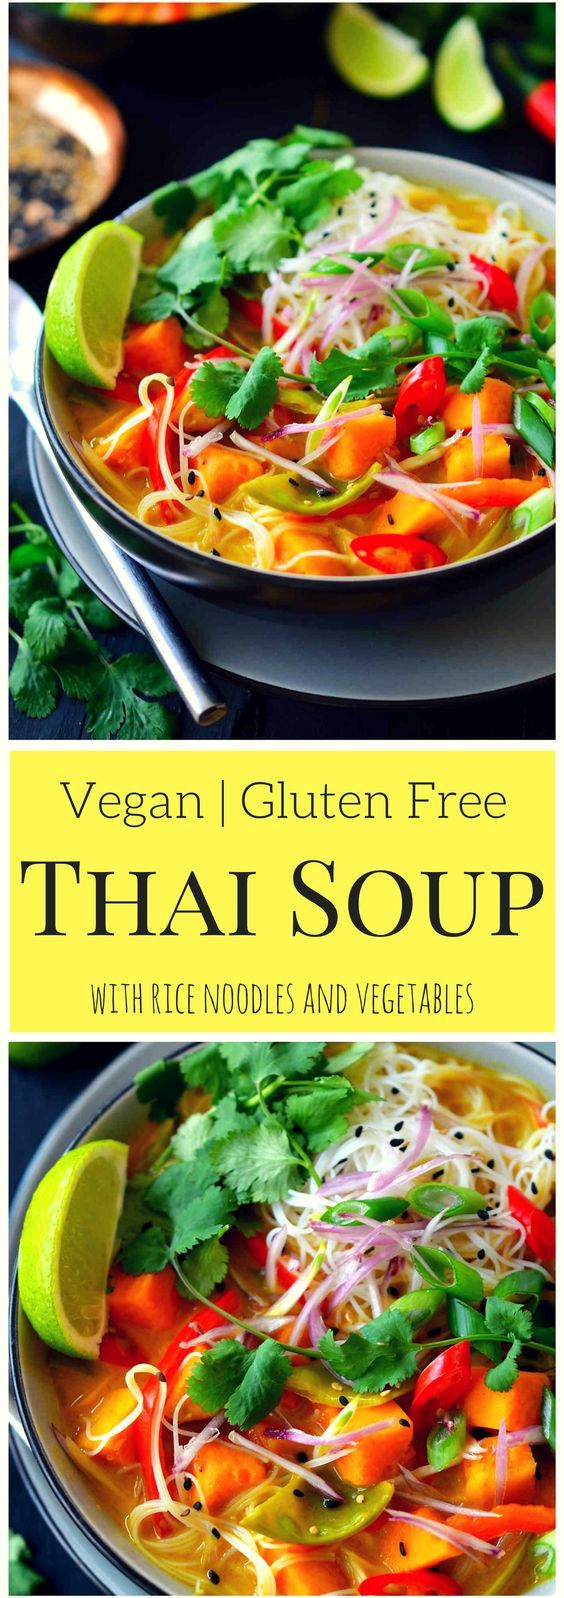 This vegan Thai soup is a hearty dish brimming with vegetables, rice noodles and herbs in a sweet, savoury and spicy coconut broth. It's easy to make with a vegan store-bought curry paste and you won't need any exotic ingredients to get this delicious soup on the table in just 20 minutes!